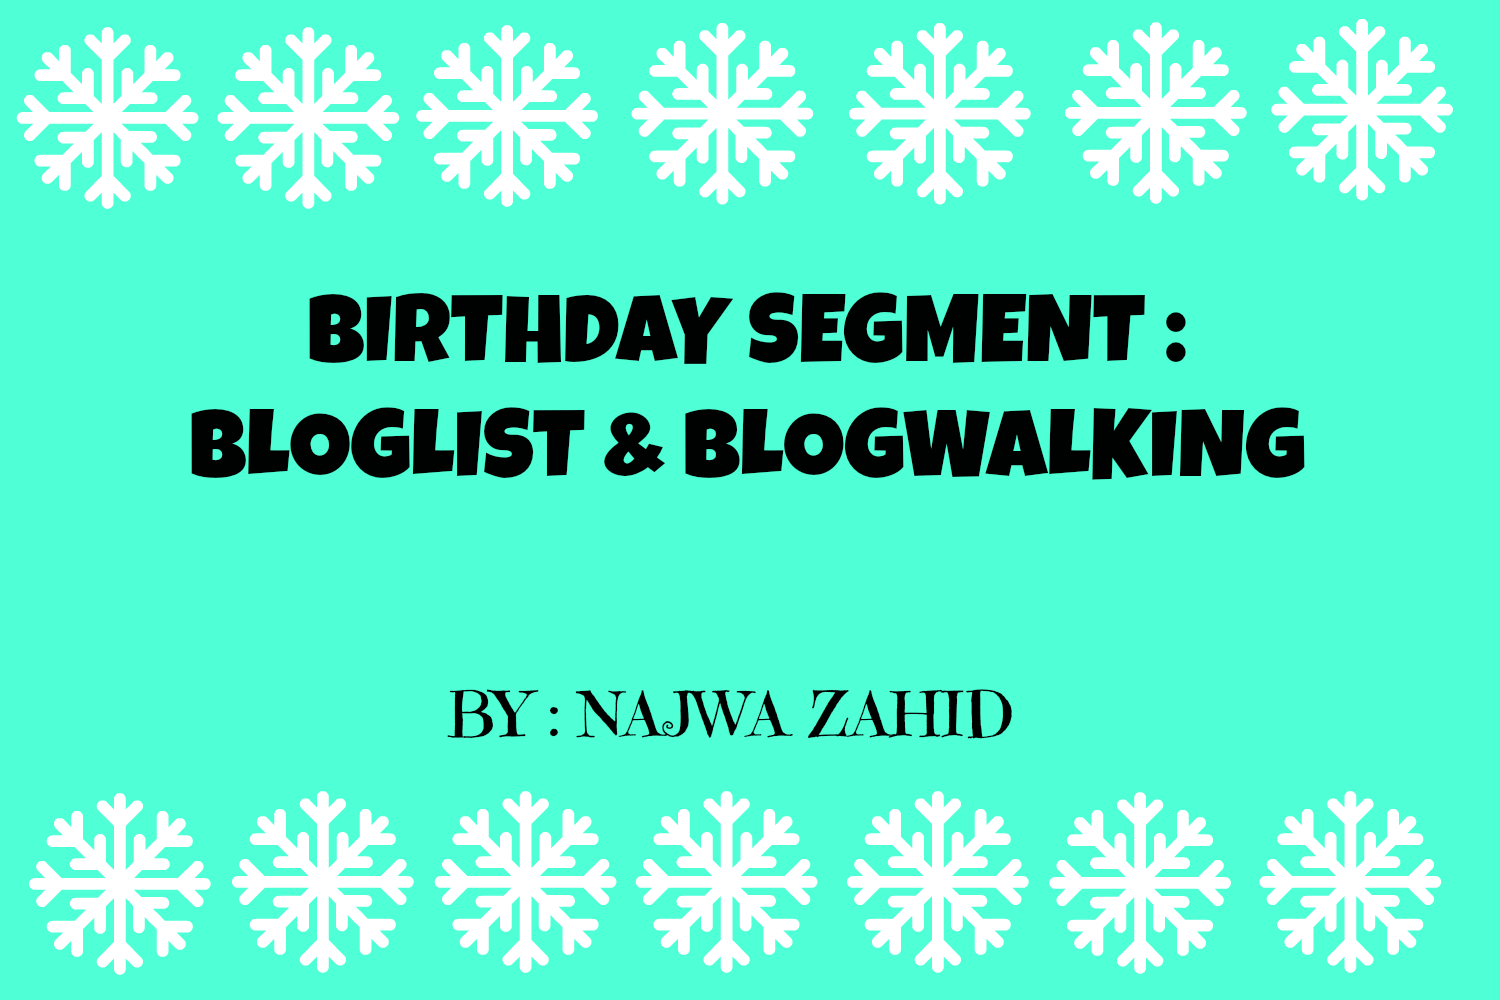 Birthday Segment : Bloglist & Blogwalking by Najwa Zahid